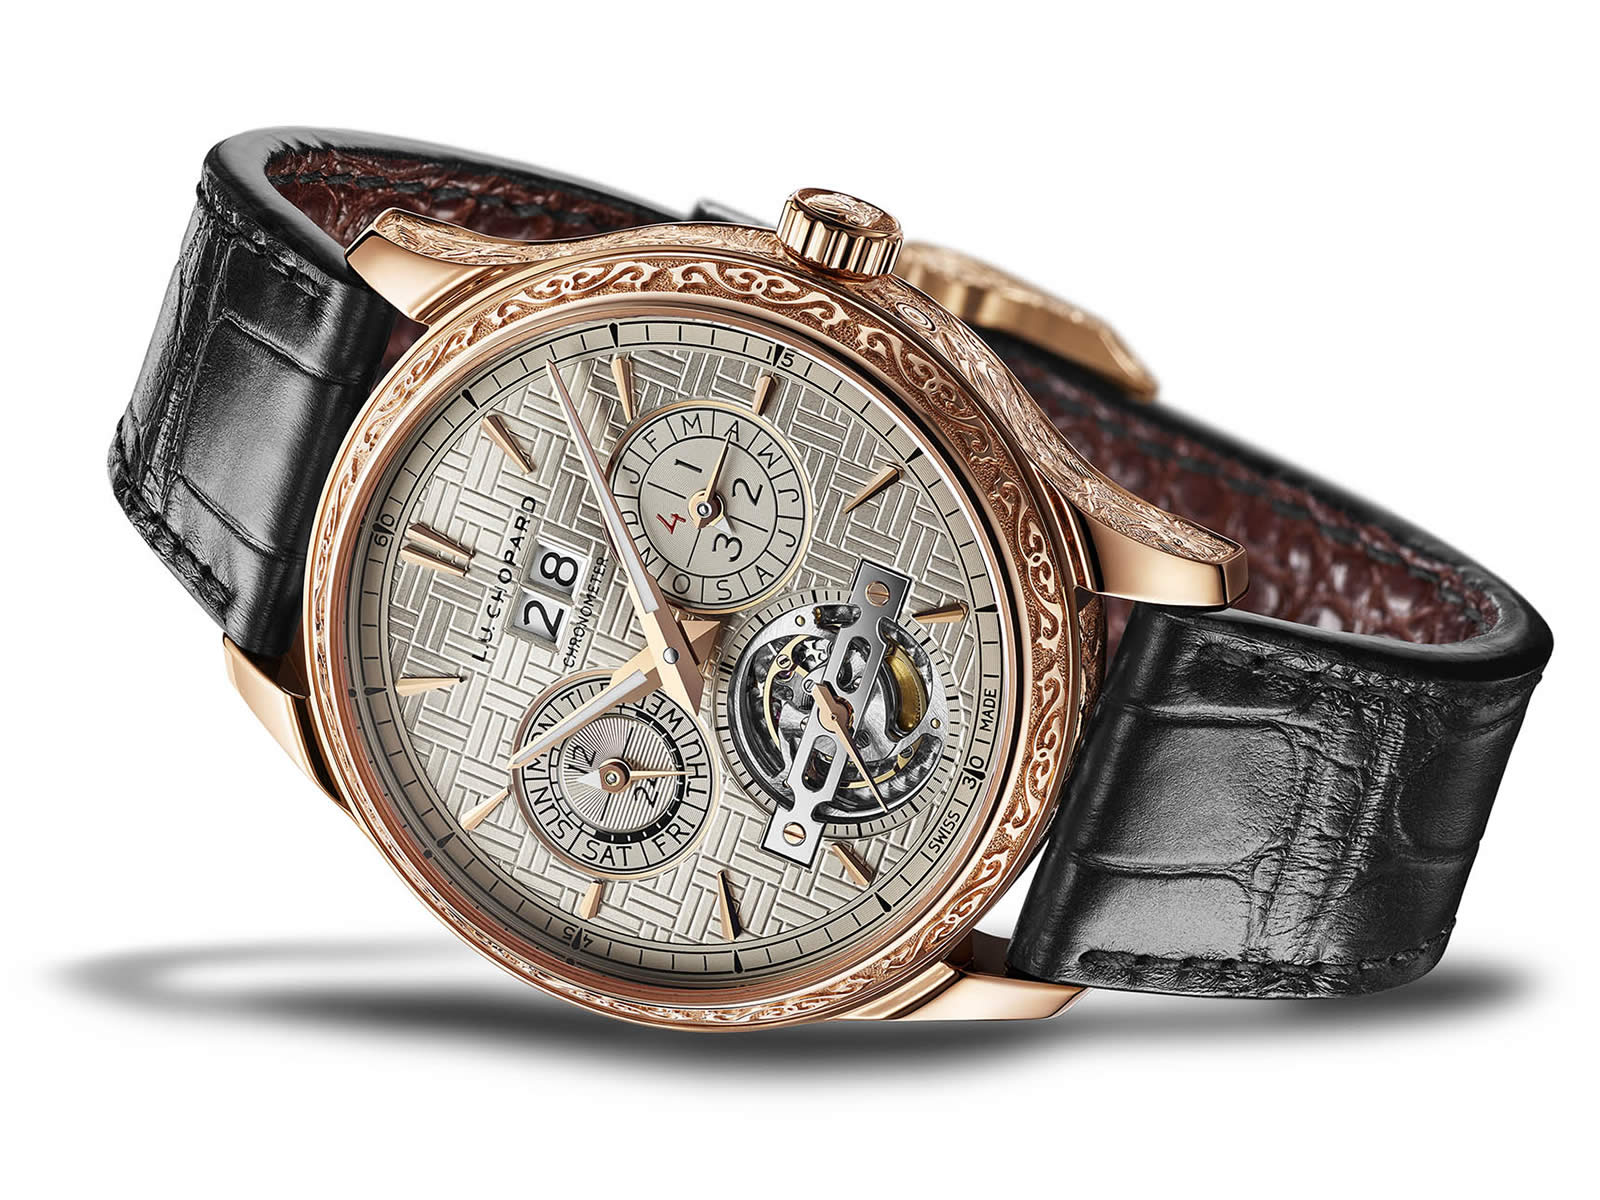 161941-5002-chopard-l-u-c-perpetual-t-spirit-of-the-chinese-zodiac-1-.jpg